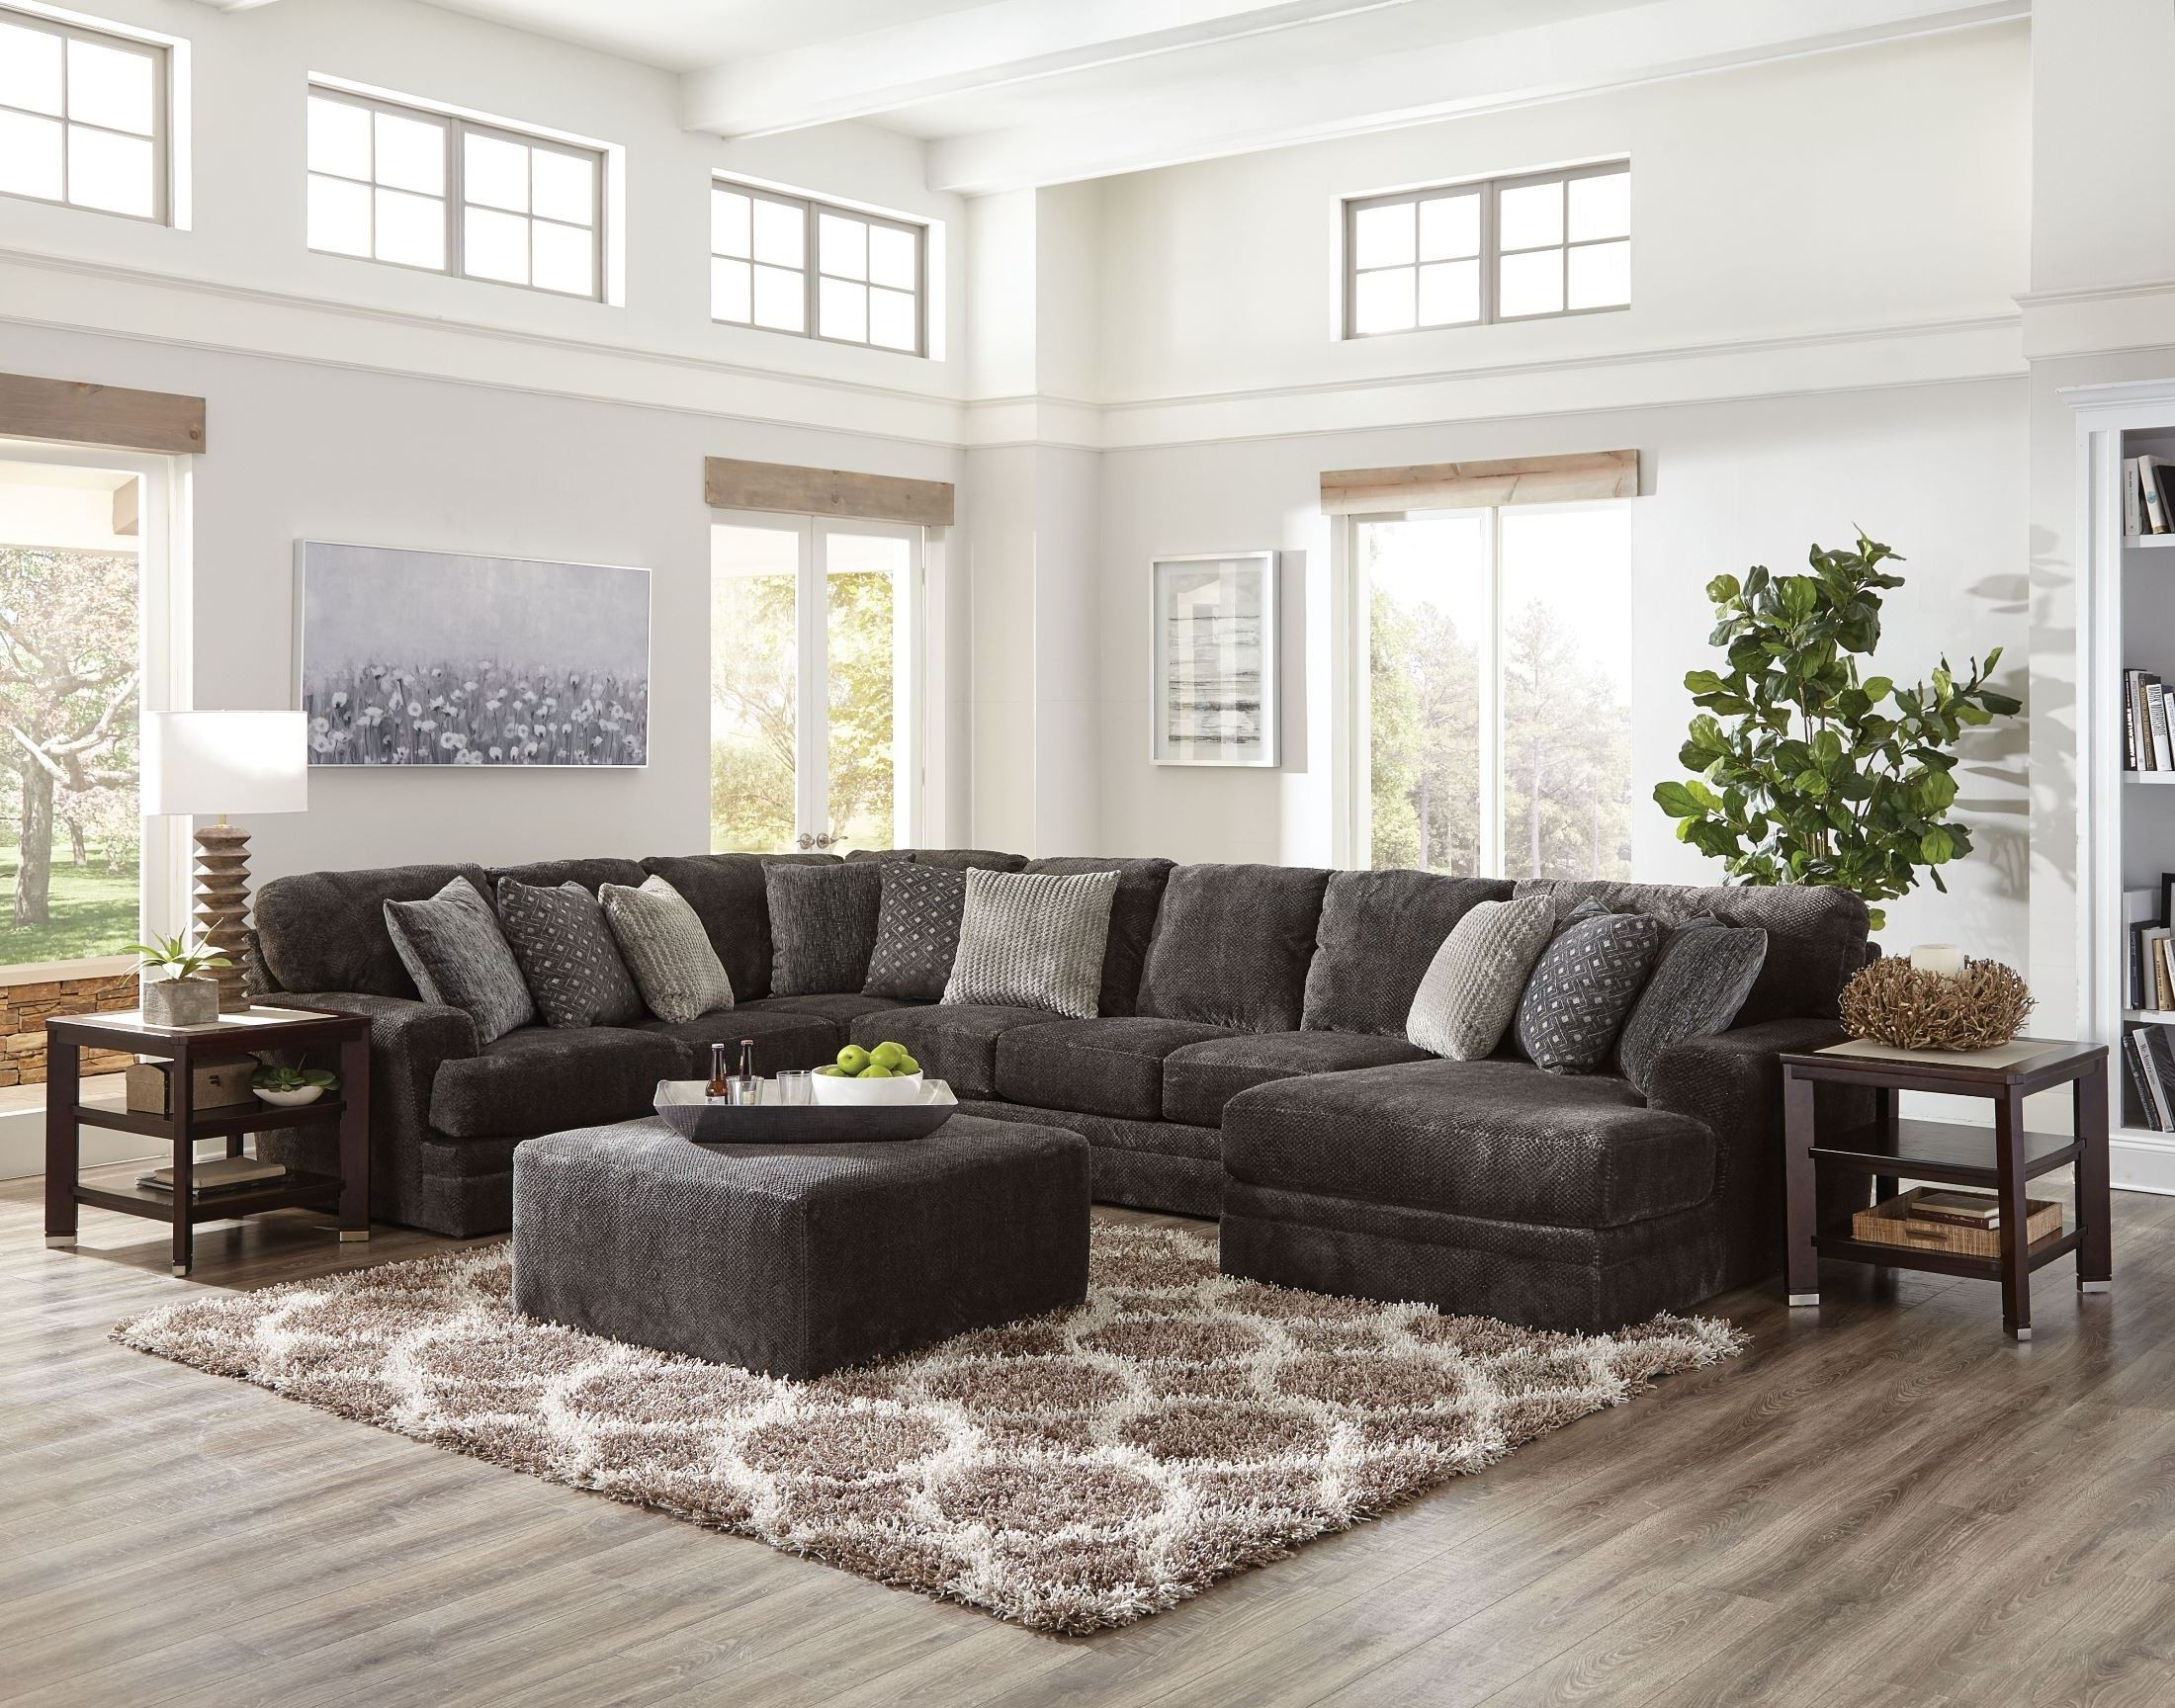 Coleman Furniture Regarding Avery 2 Piece Sectionals With Raf Armless Chaise (View 10 of 20)